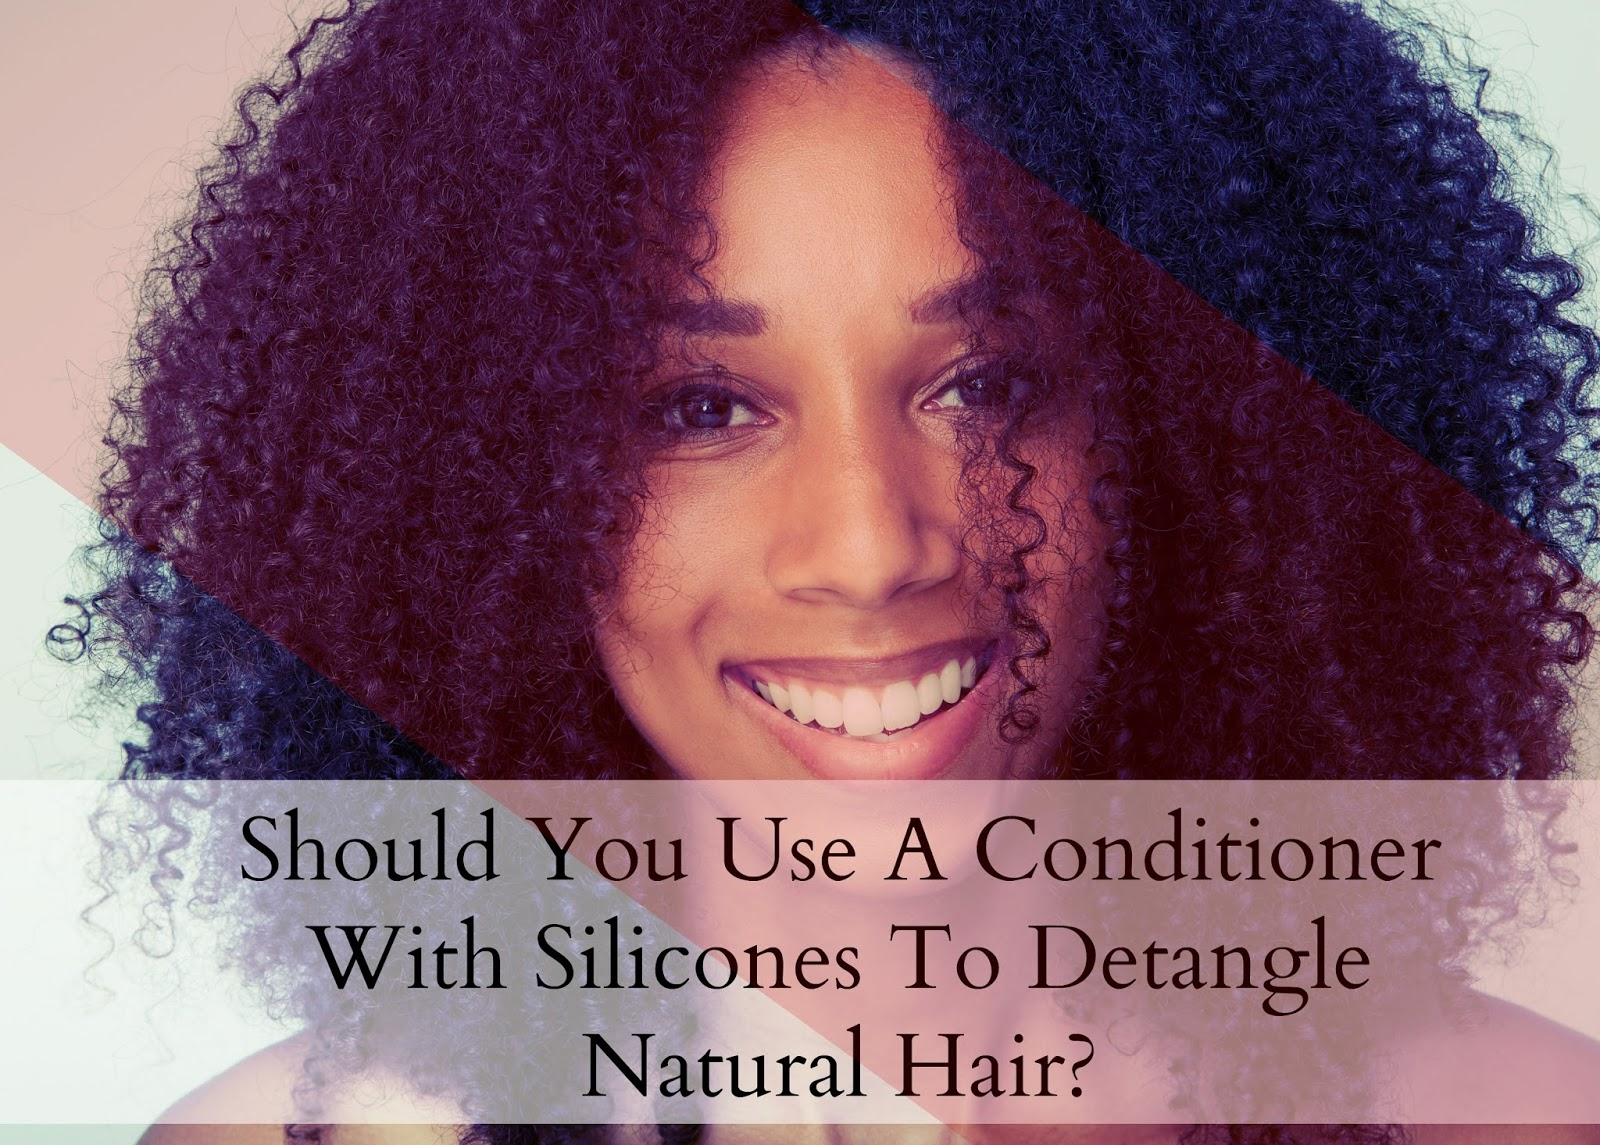 Should You Use A Conditioner With Silicones To Detangle Natural Hair?